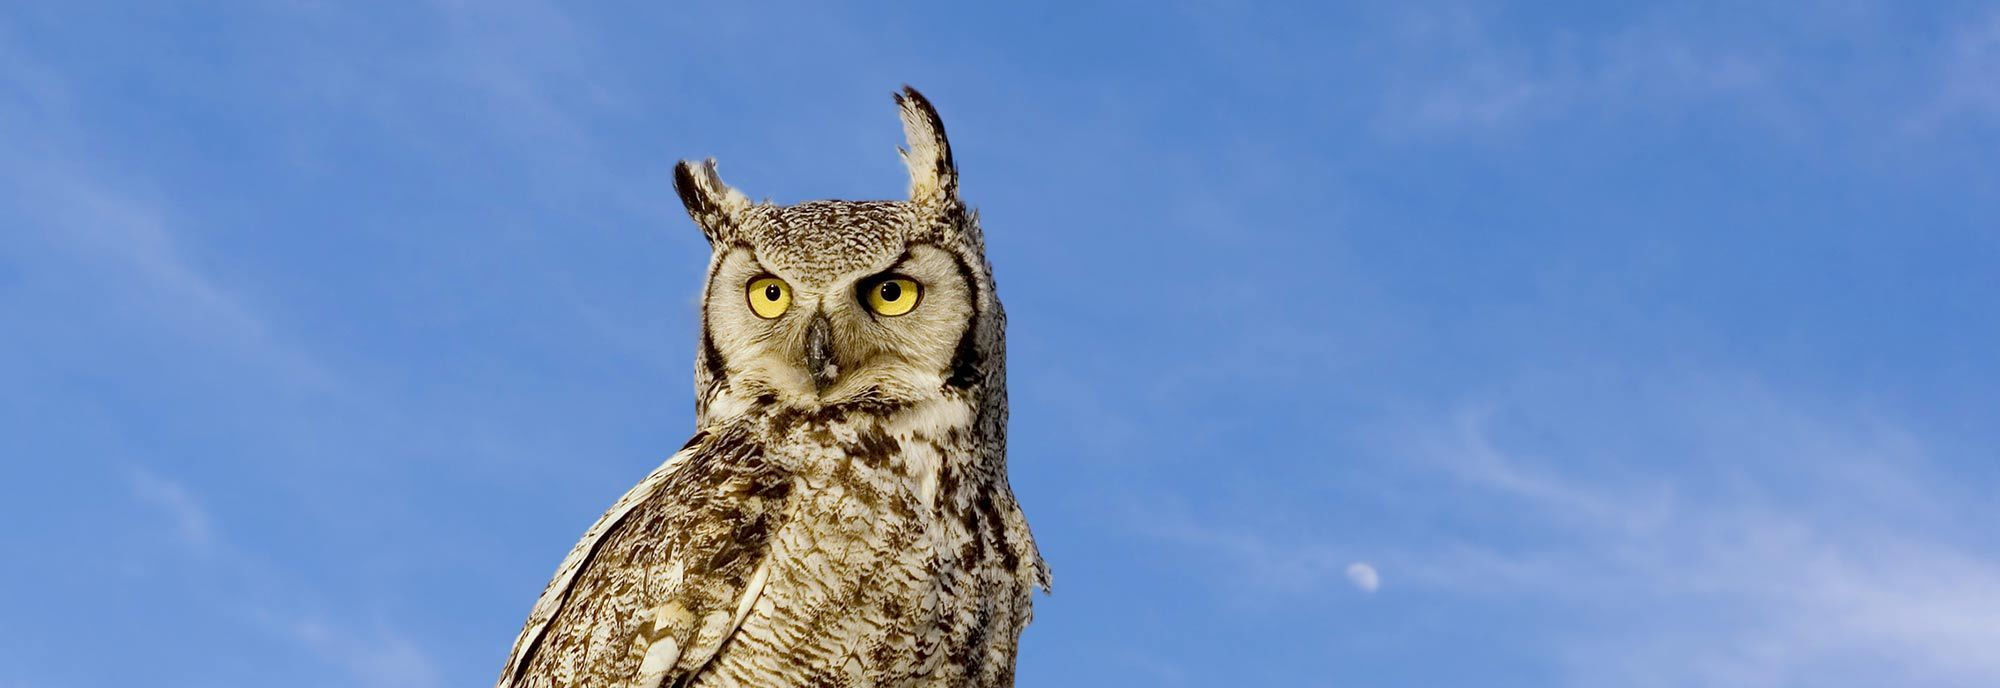 Owl against blue sky - banner photo for Nite Guard Owl Deterrent page